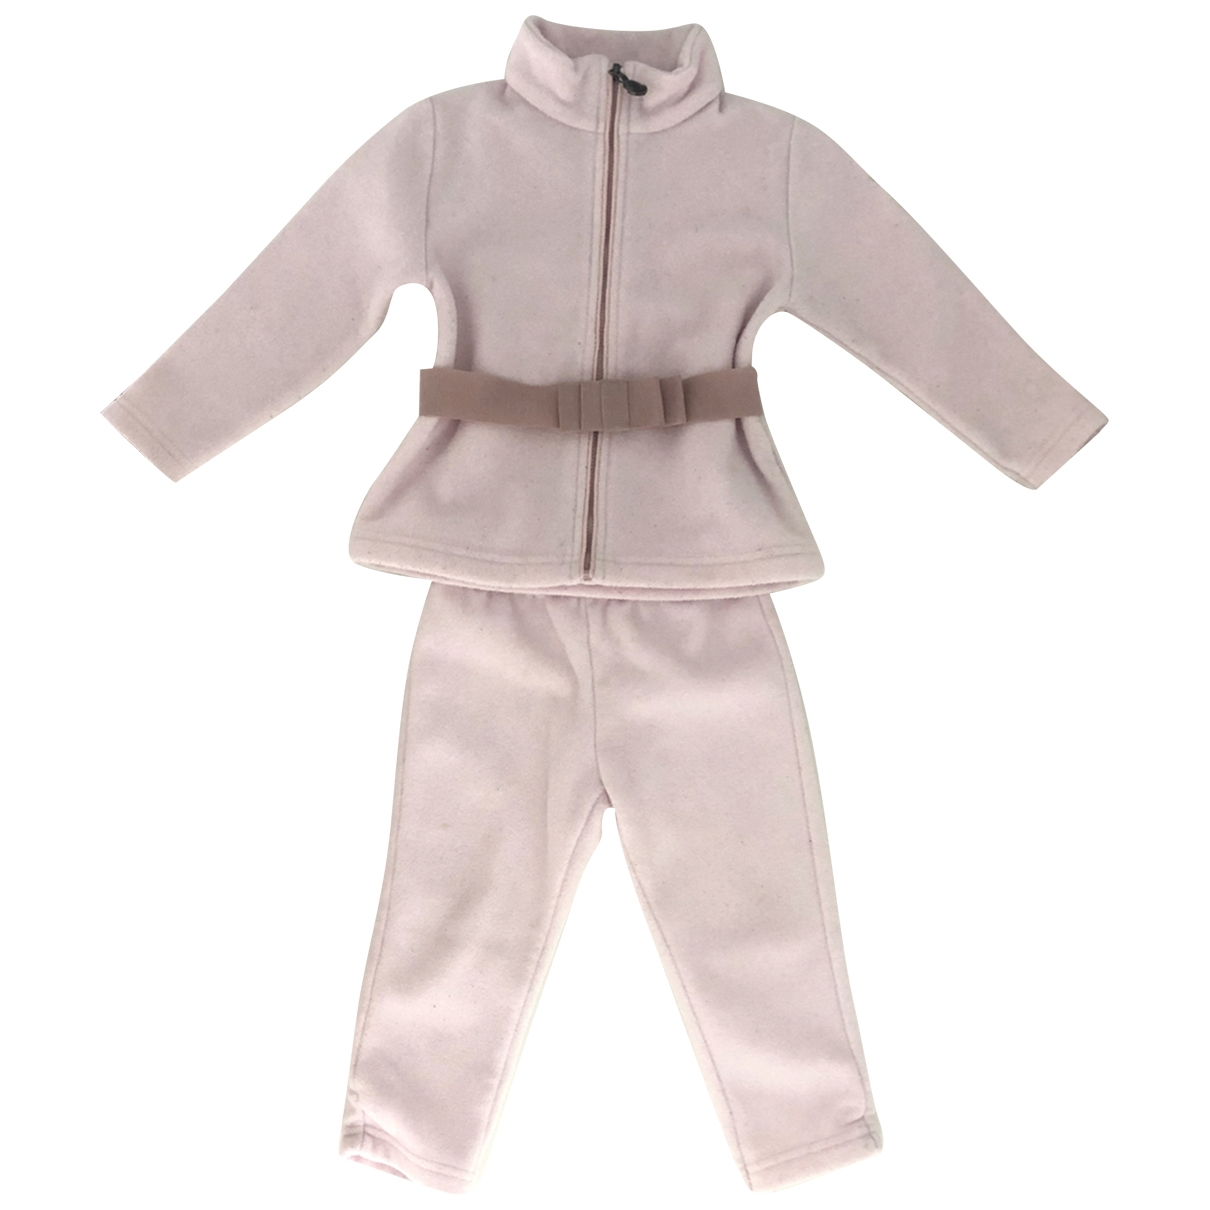 Moncler \N Pink Outfits for Kids 12 months - up to 74cm FR